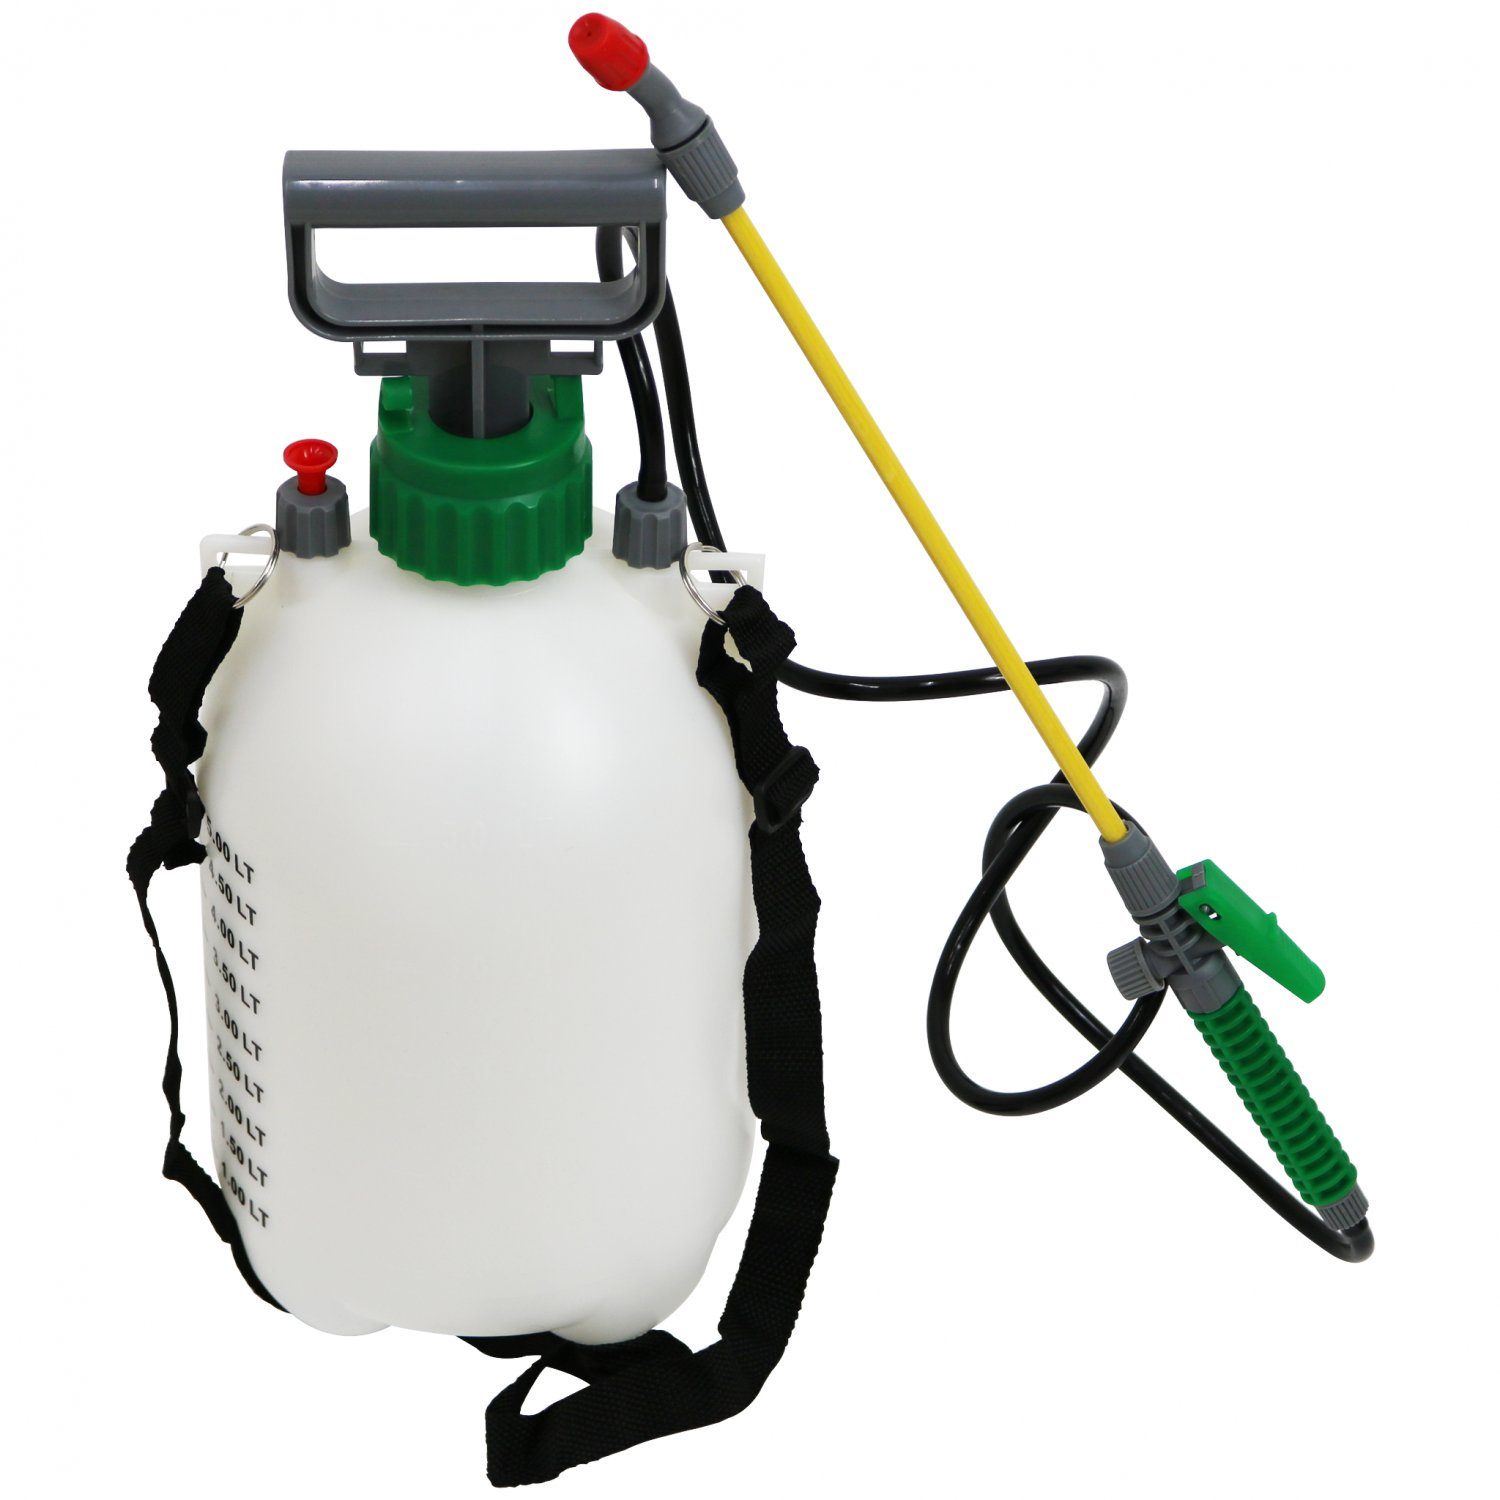 5L 5 Litre Pump Action Pressure Crop Garden Weed Sprayer